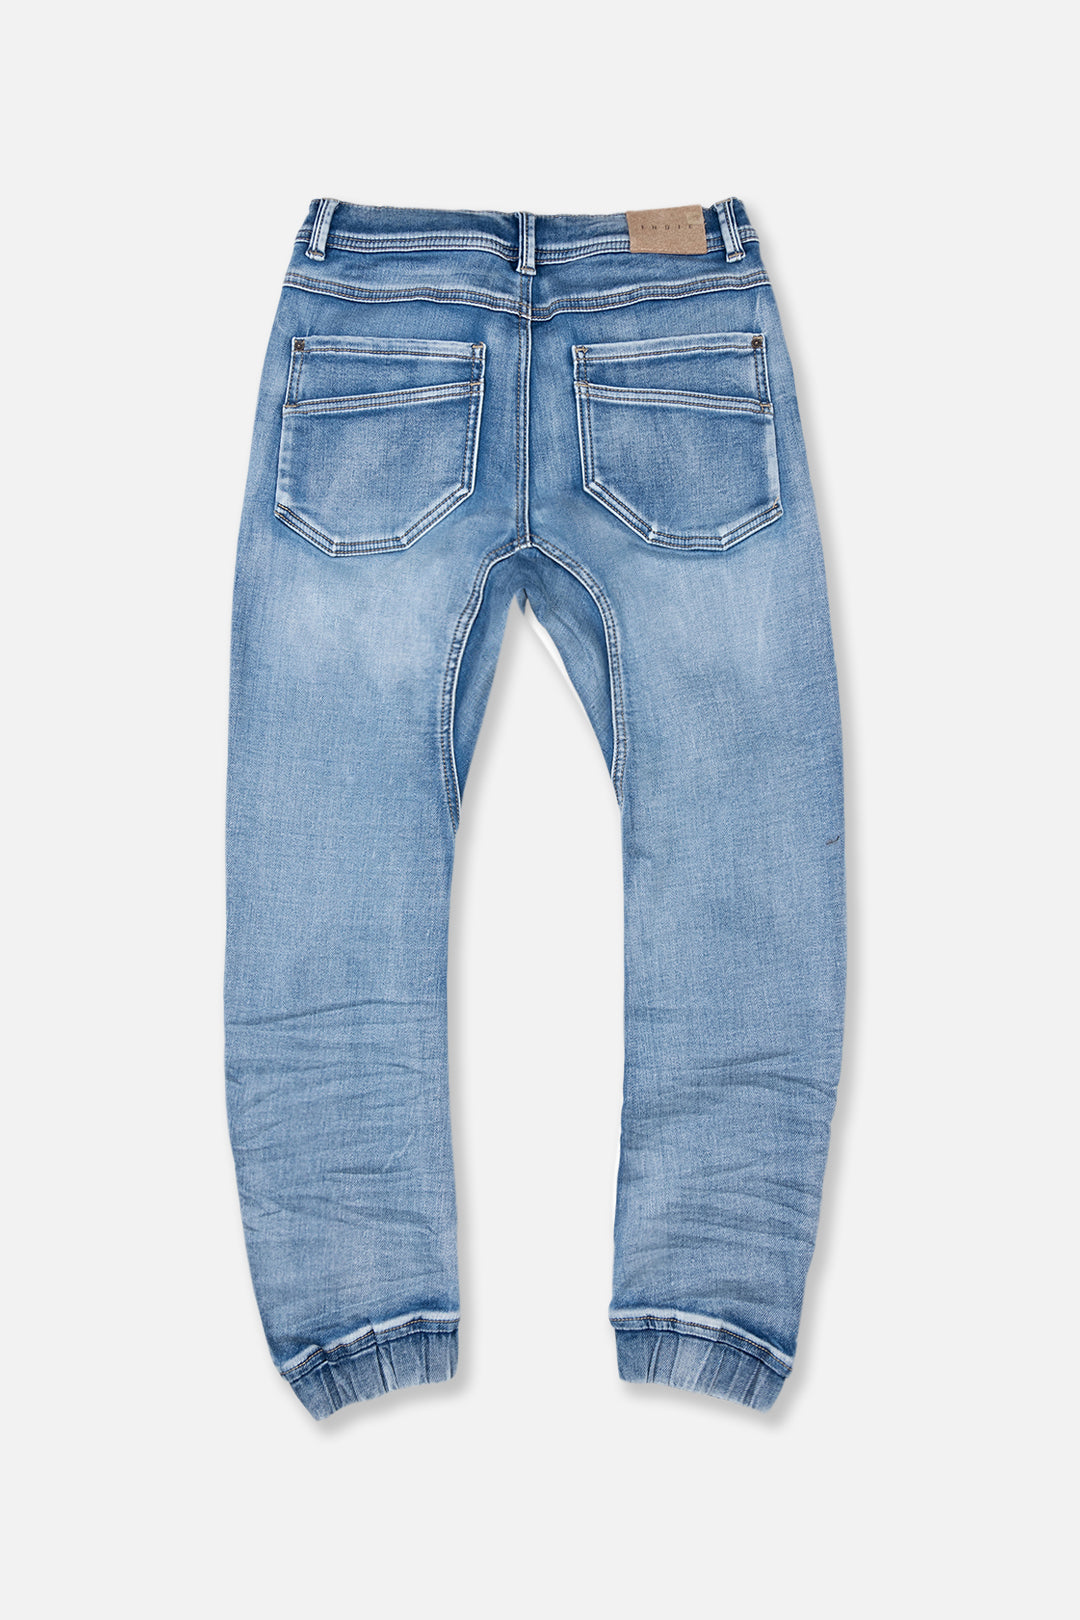 S19 Arched Drifter - Light Denim